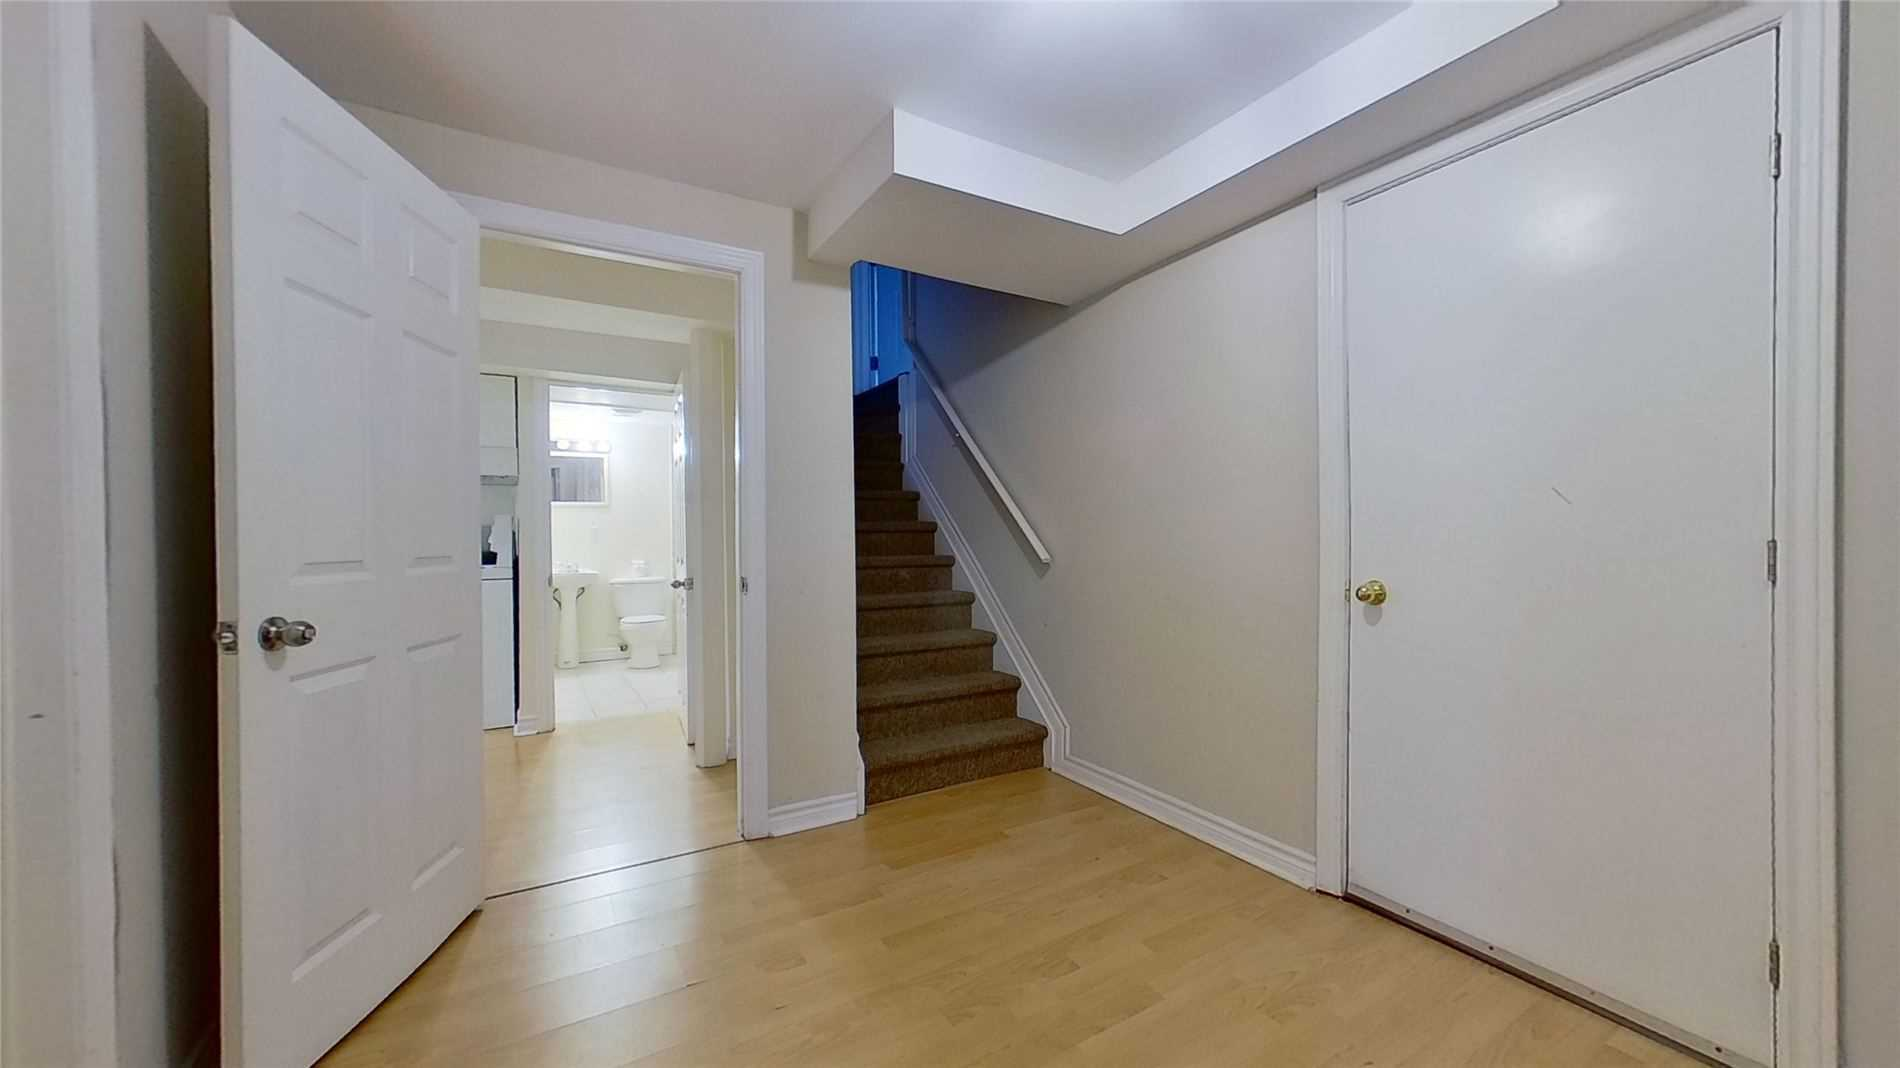 Image 7 of 16 showing inside of 2 Bedroom Detached 2-Storey for Lease at 5 Whalen Crt, Richmond Hill L4C9T5